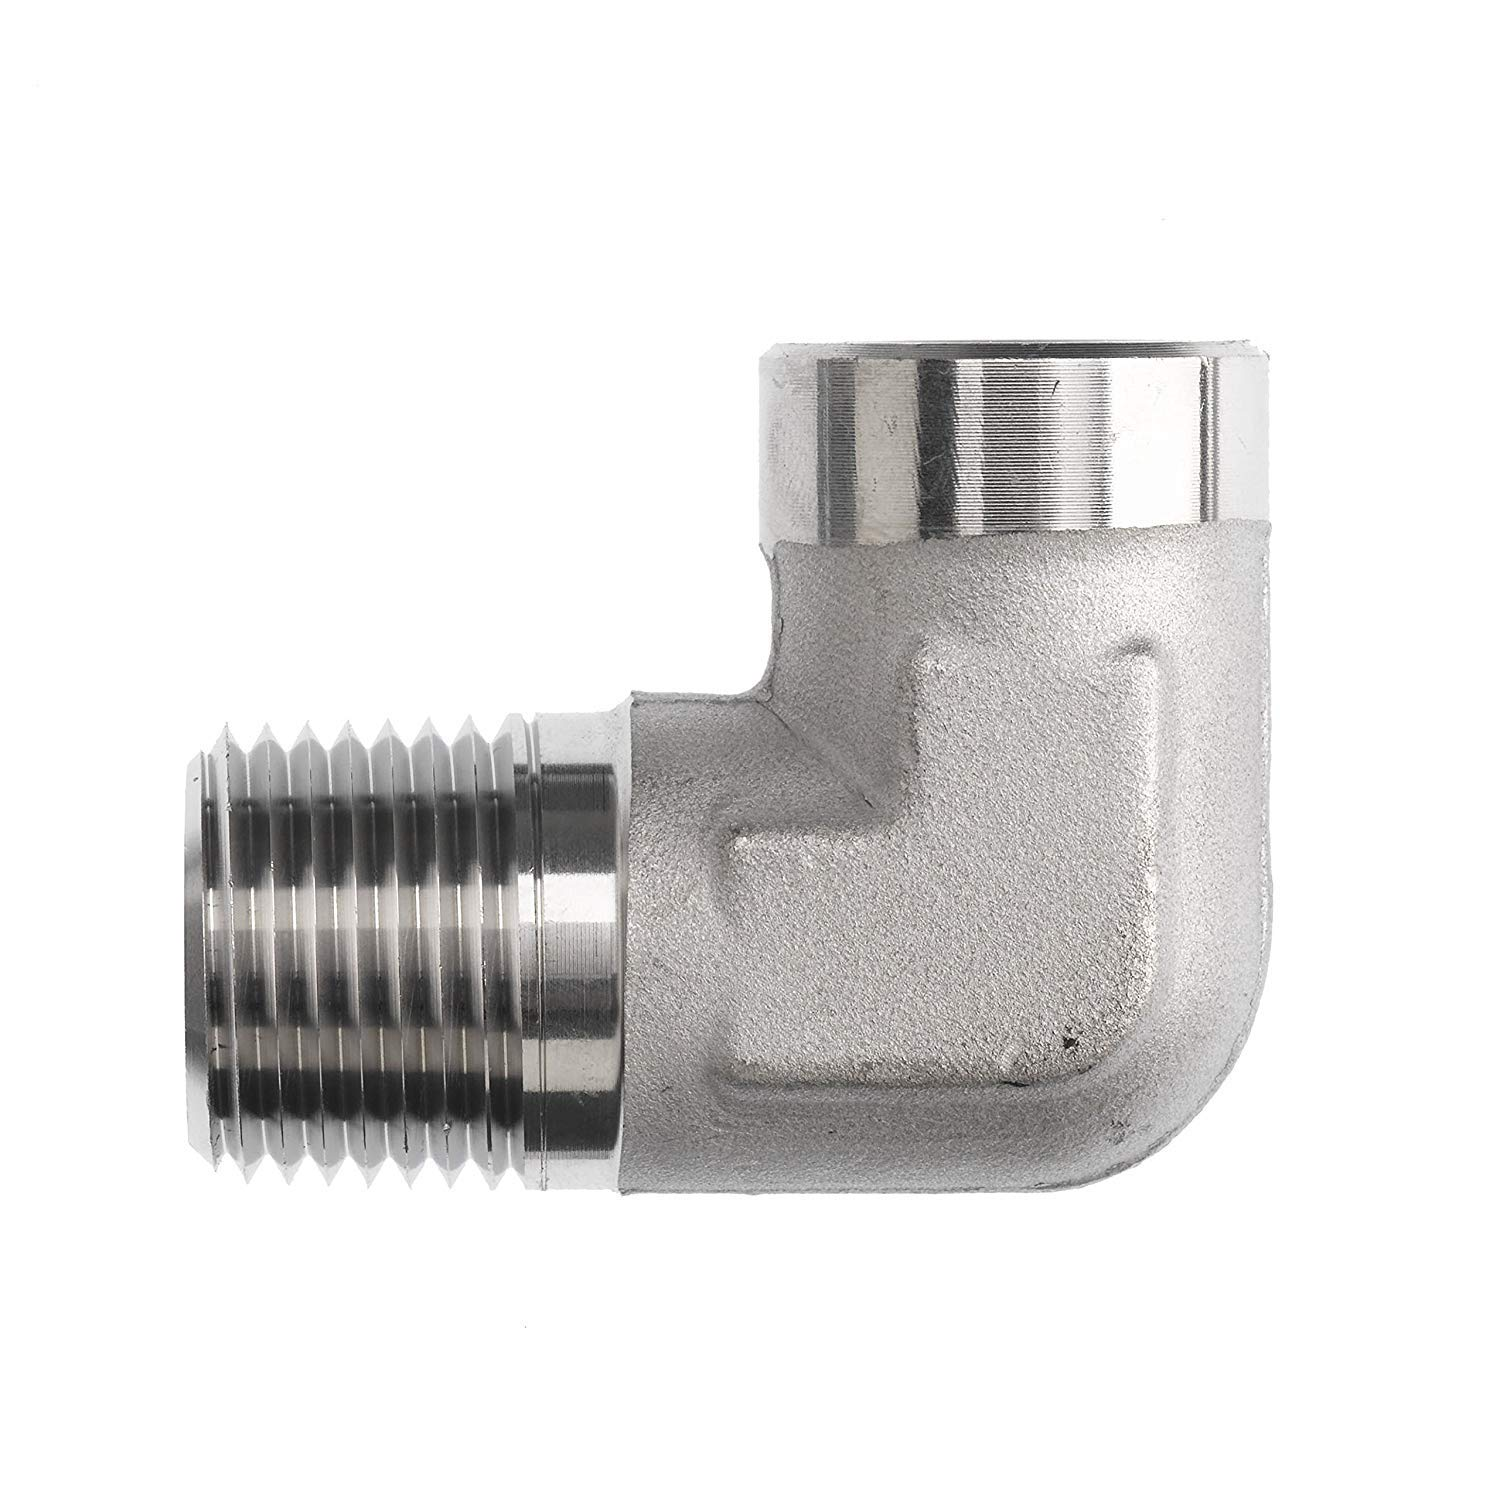 5502-12-08 Hydraulic Fitting 3//4 Male Pipe X 1//2 Female Pipe 90 Degree Carbon Steel